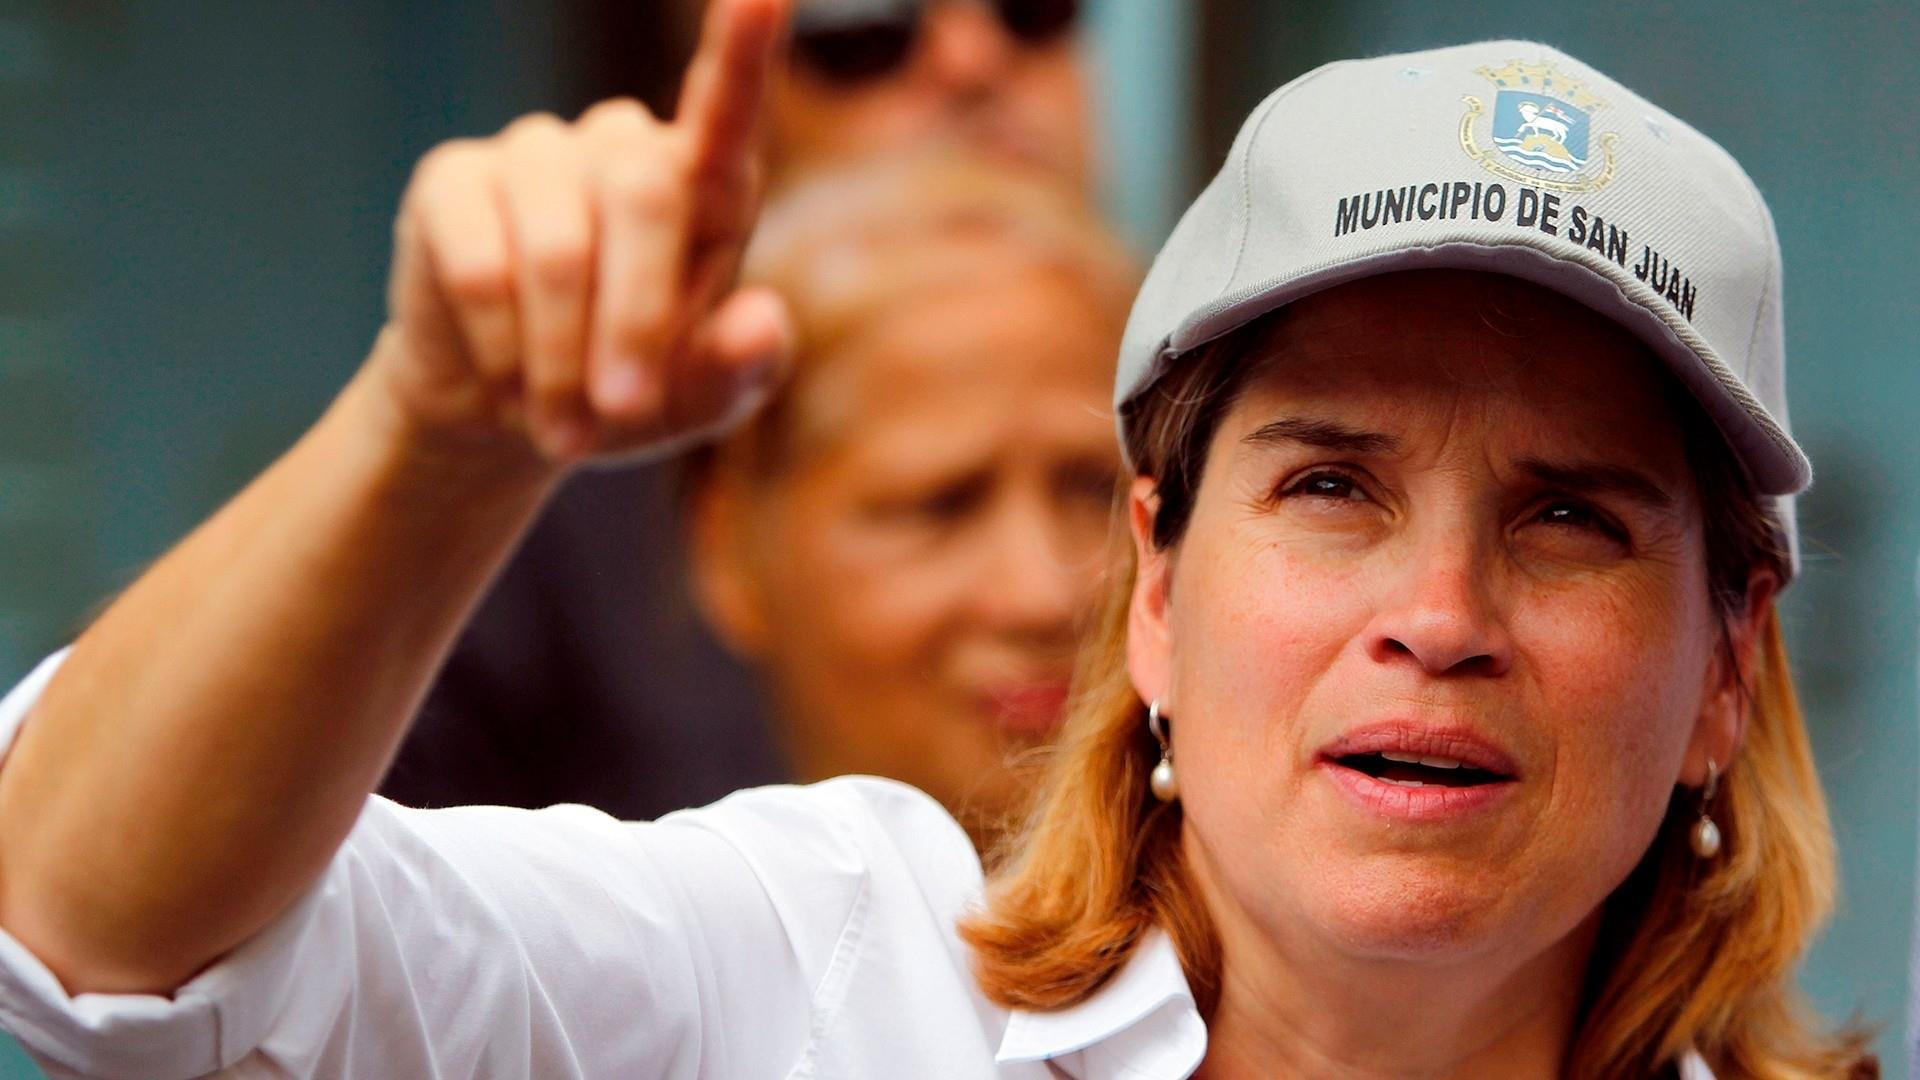 San Juan Mayor on Trump's tweet: 'Here he goes again'